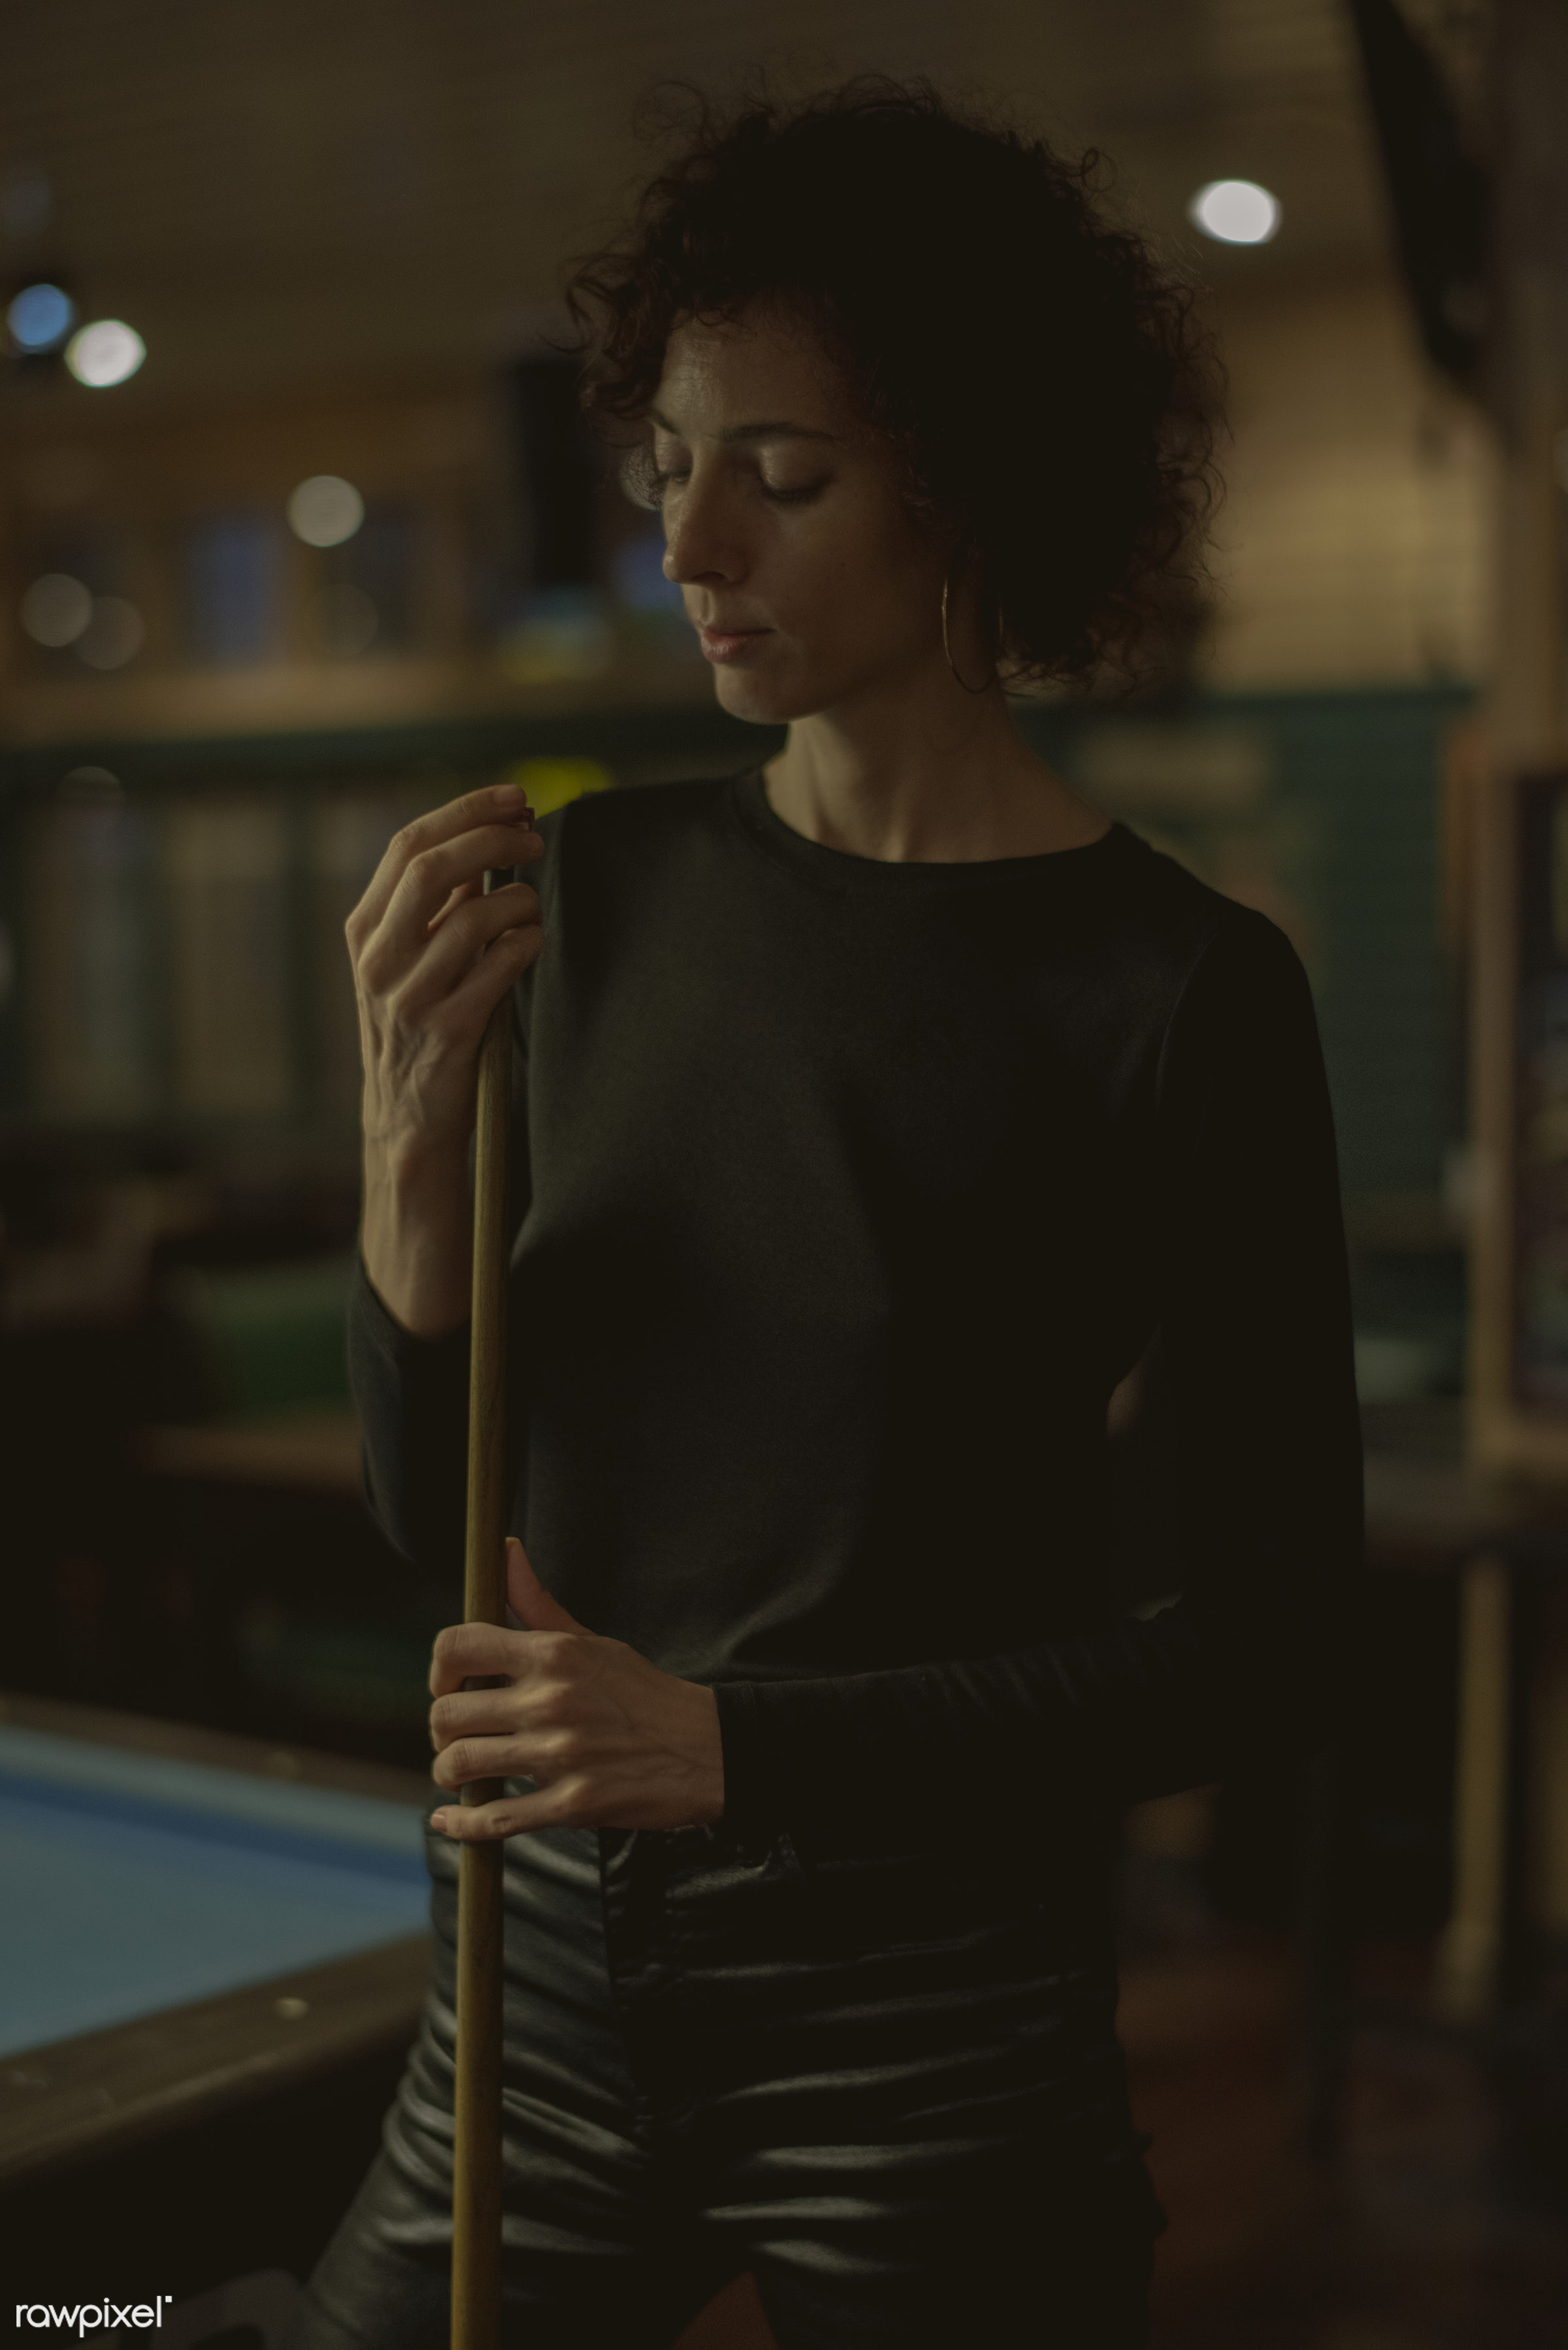 Woman playing pool at a bar - 8 ball, alone, bar, billiard, cue, curly hair, dark, entertain, game, lifestyle, night, night...